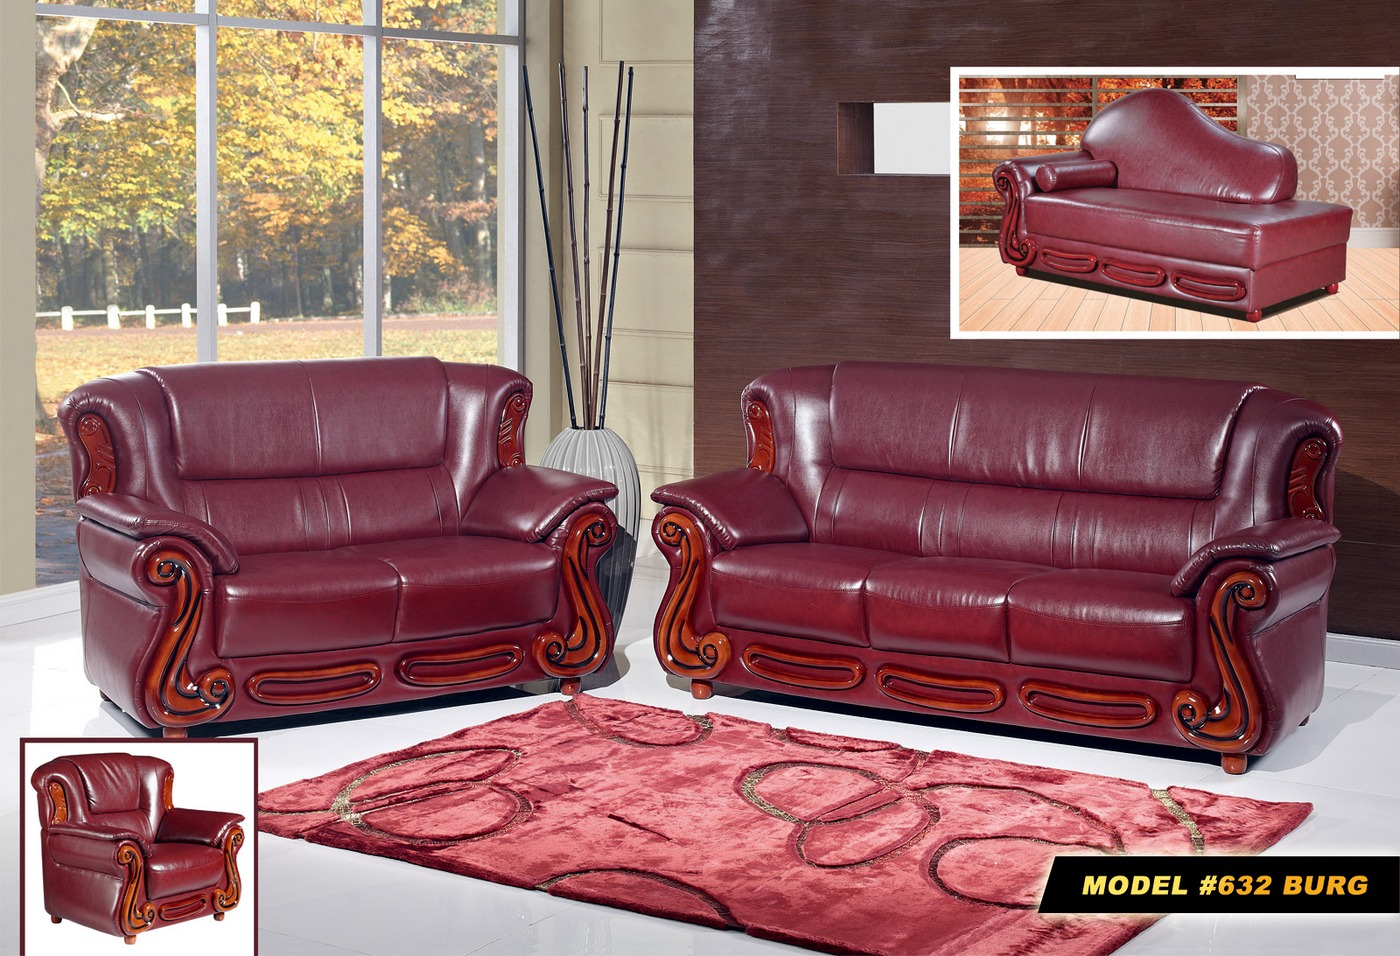 Bella burgundy traditional leather chaise with wood accents for Burgundy leather chaise